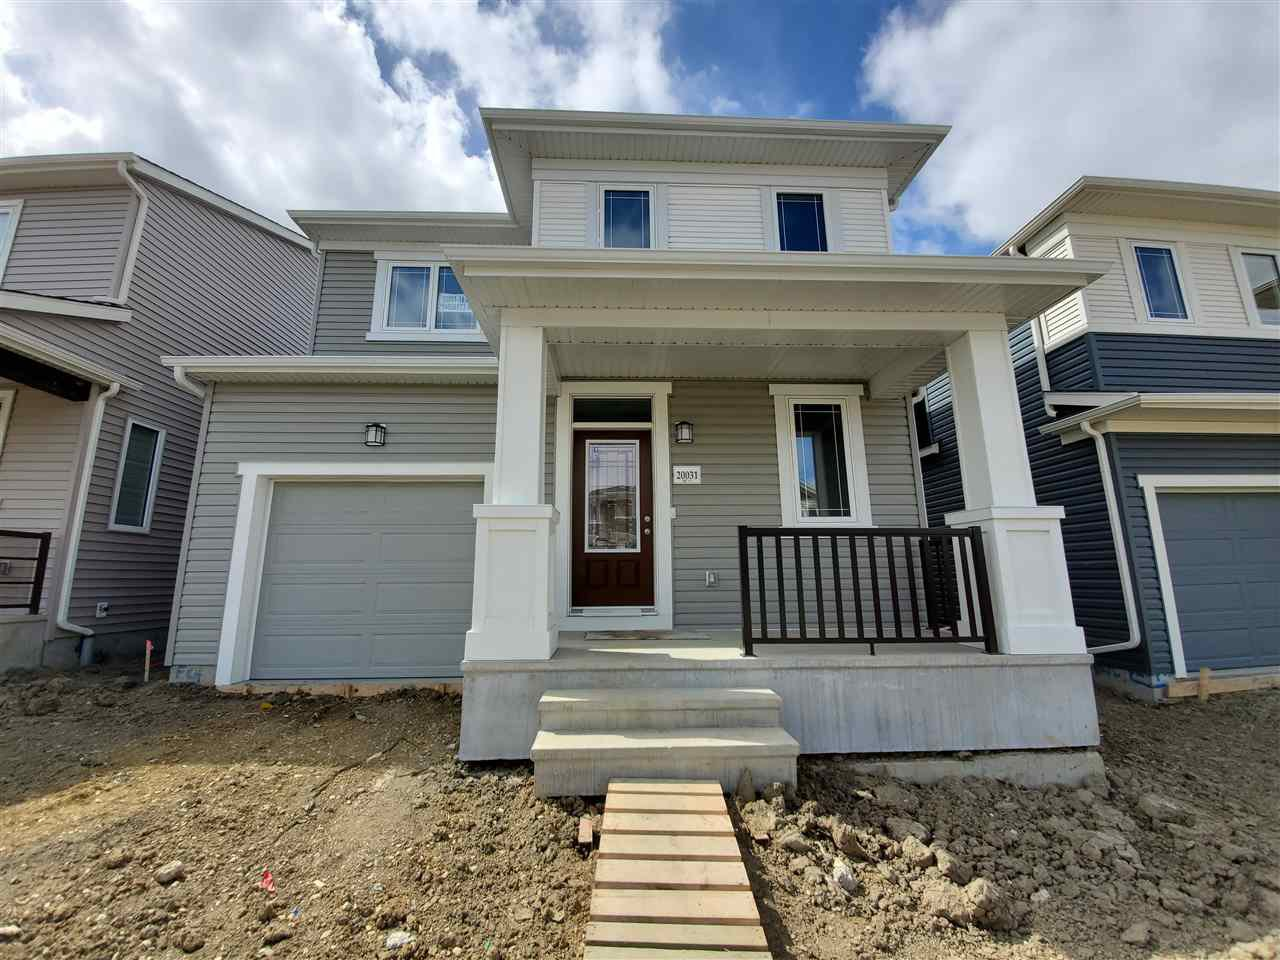 Main Photo: 1619 202 Street in Edmonton: Zone 57 House for sale : MLS®# E4177362